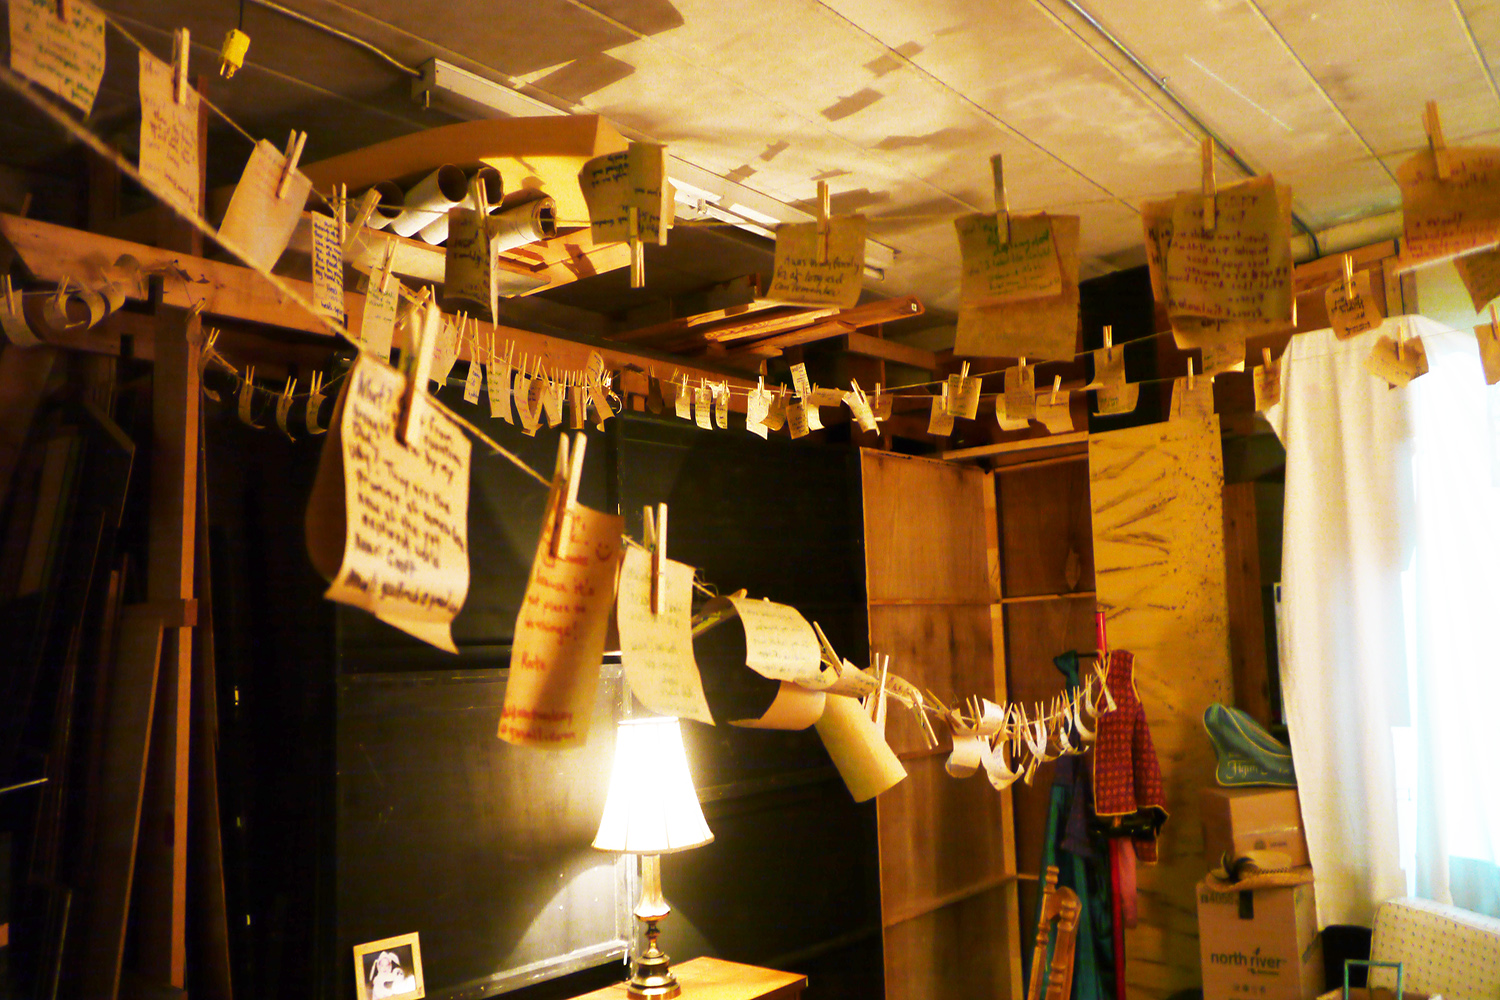 Storyage Notes Hanging in the Attic Space